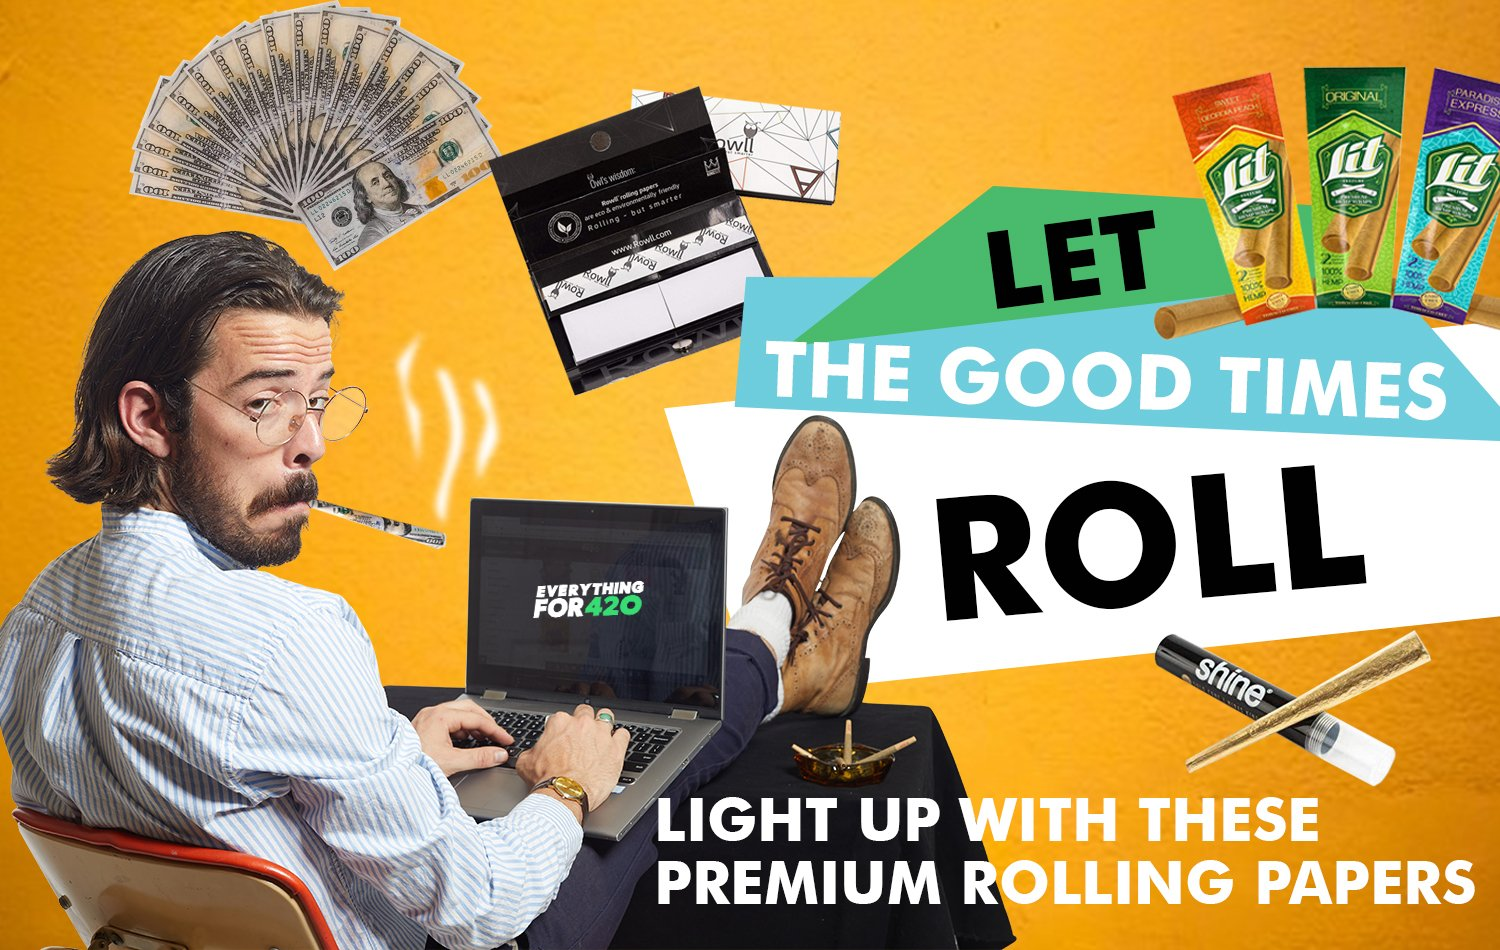 Let The Good Times Roll: Light Up With These Premium Rolling Papers